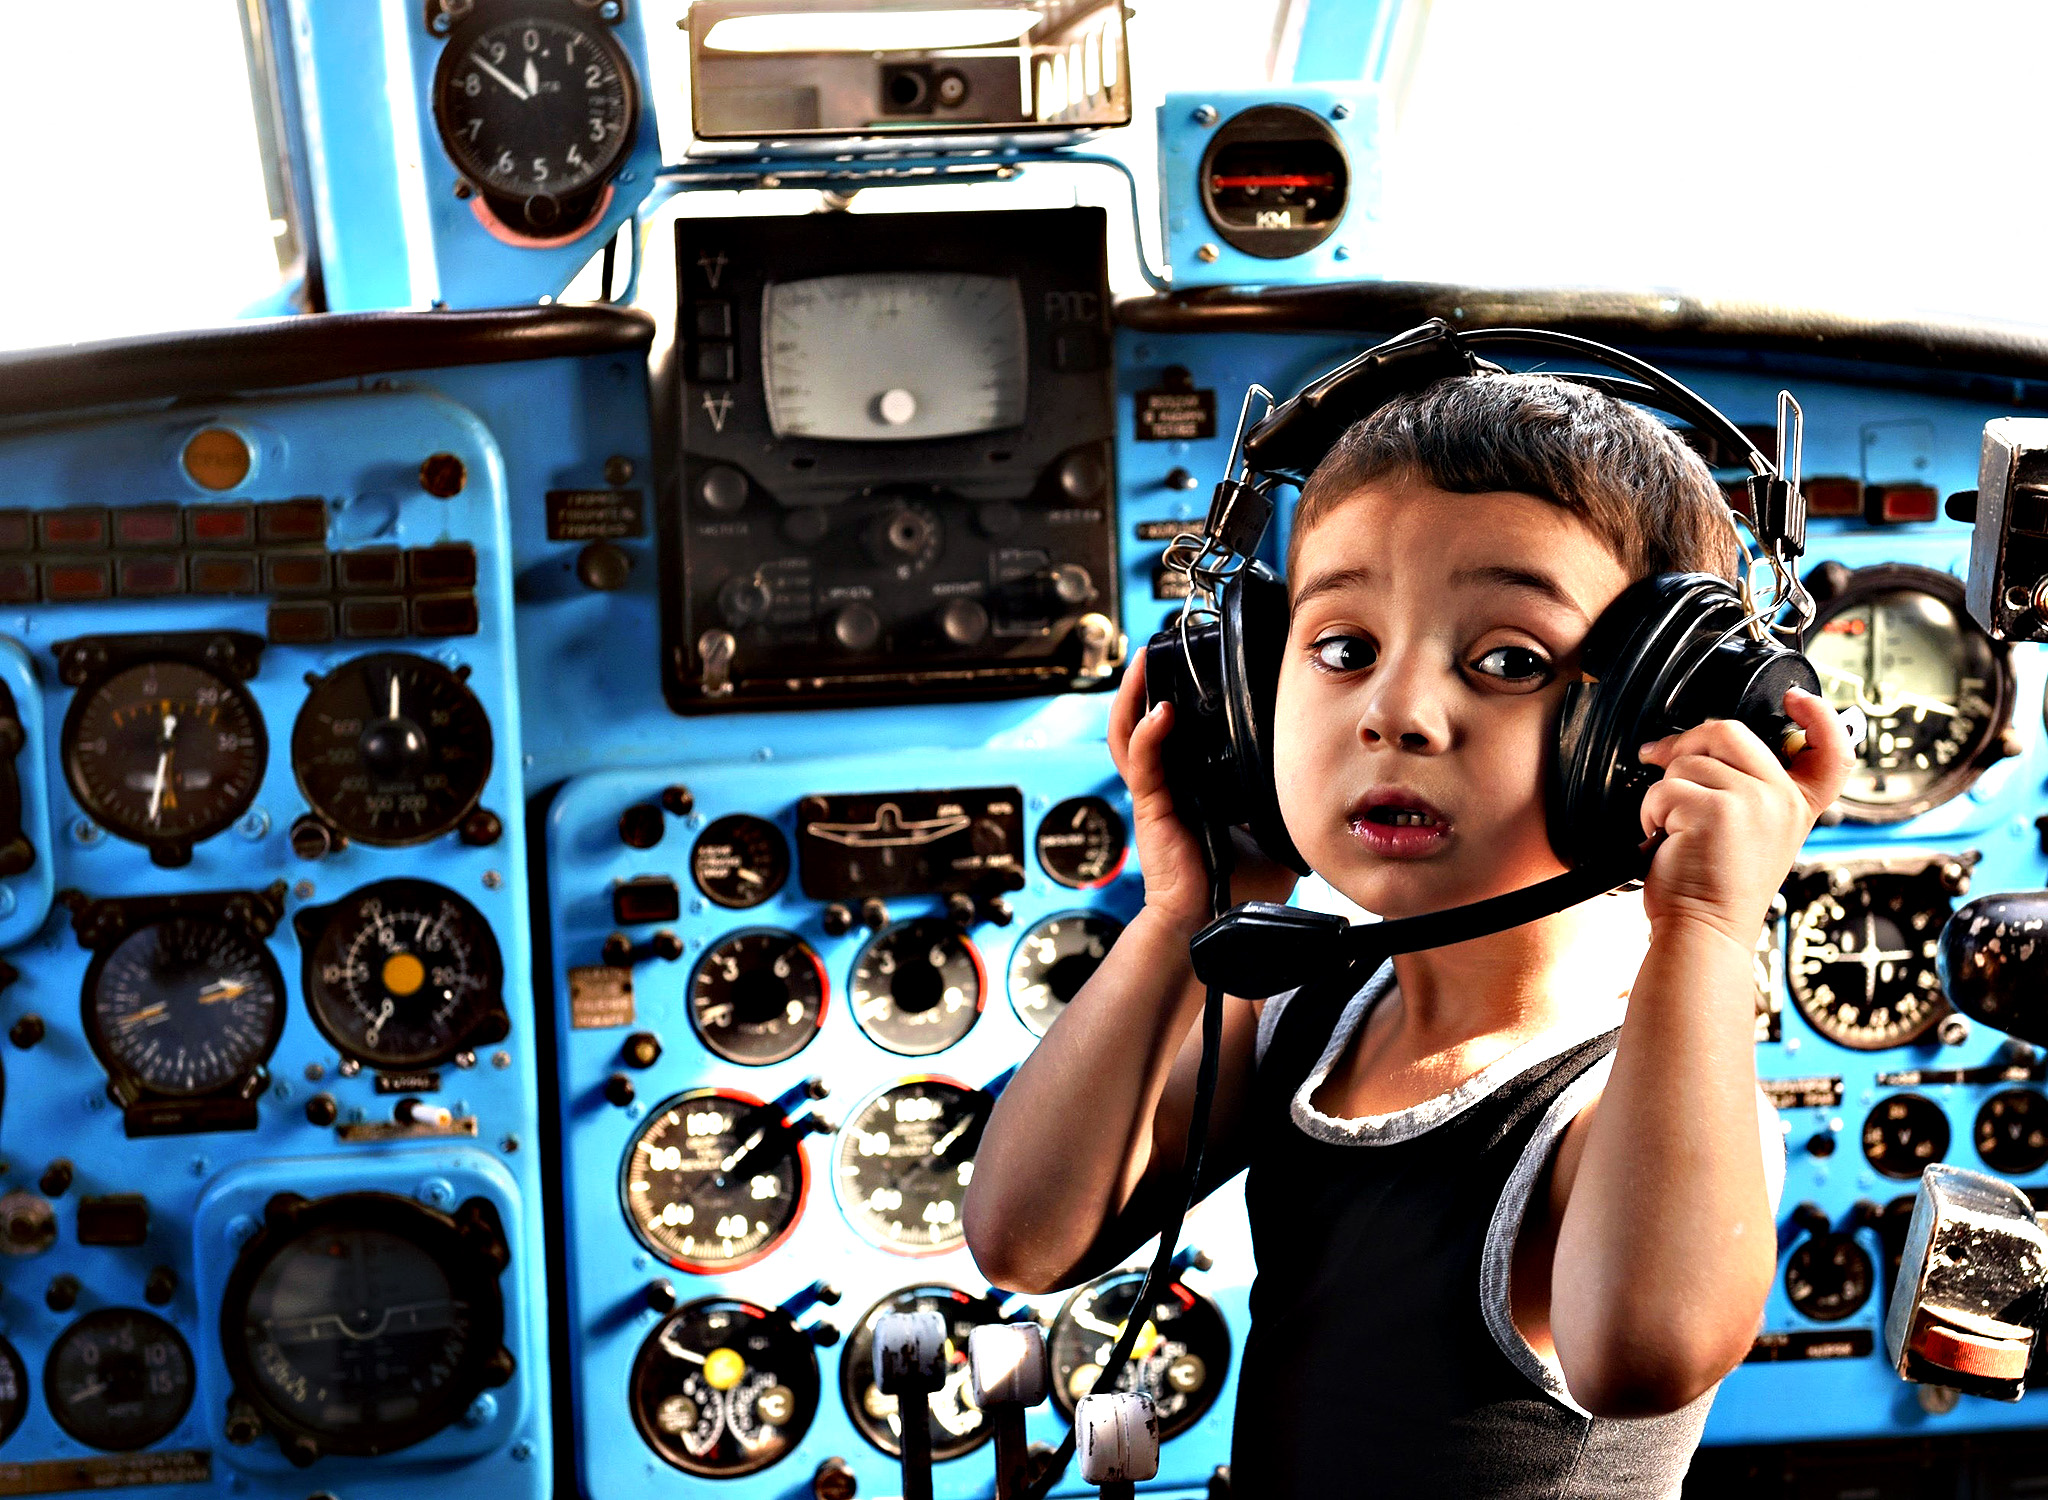 A boy plays inside a Soviet-era Yakovlev Yak-40 plane turned into their kindergarten in the Georgian city of Rustavi, some 25 km southeast of the capital Tbilisi, on Monday. Local head teacher Gari Chapidze bought the old but fully functional Yak-40 from Georgian Airways and refurbished its interior with educational equipment, games and toys but left the cockpit instruments intact so they could be used as play tools